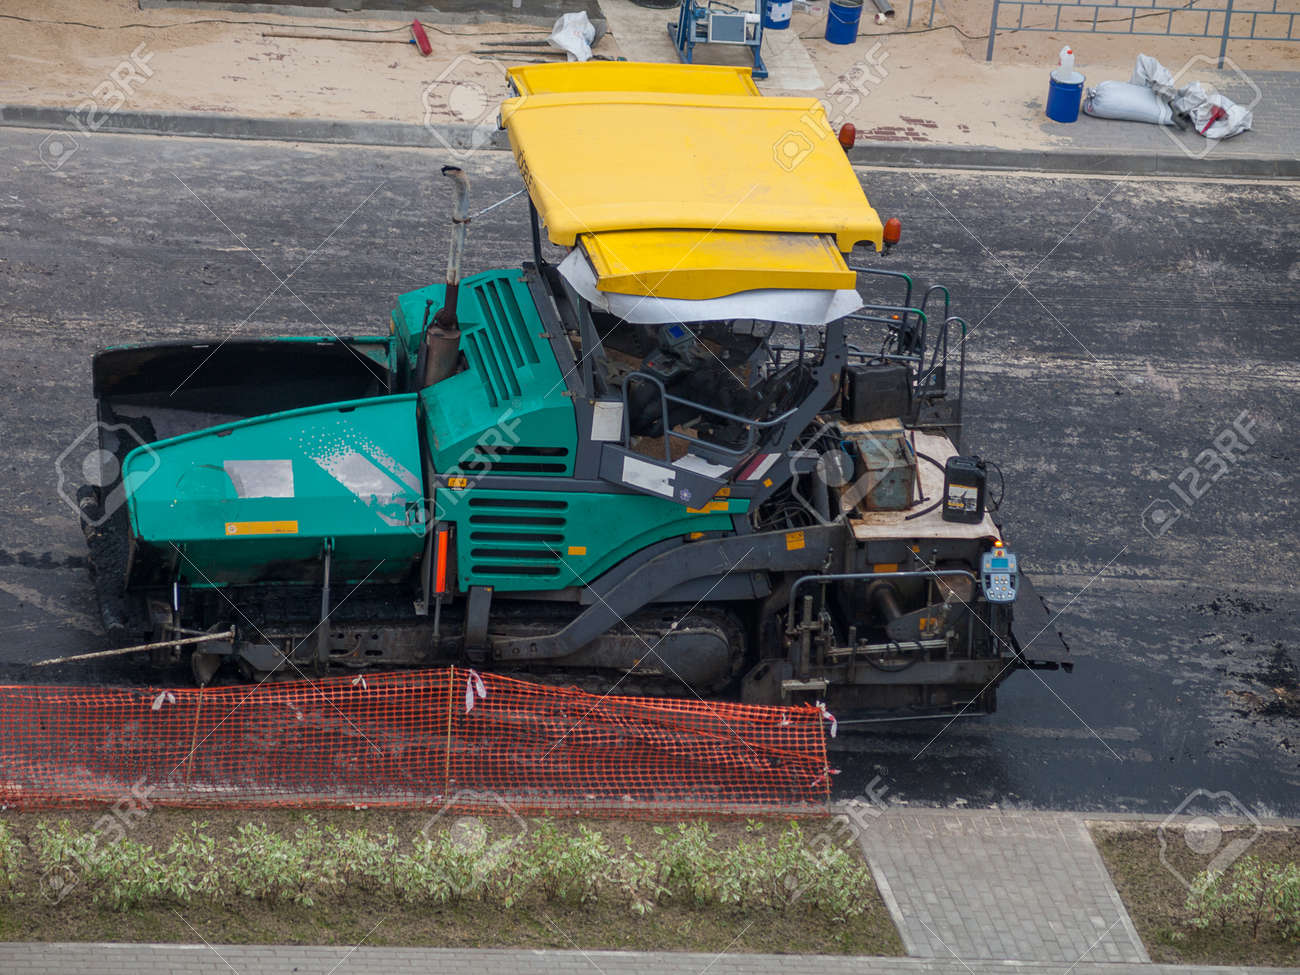 Industrial heavy road paver multifunctional modern, repair of road pavement in an urban environment, noisy work in the city - 166367344